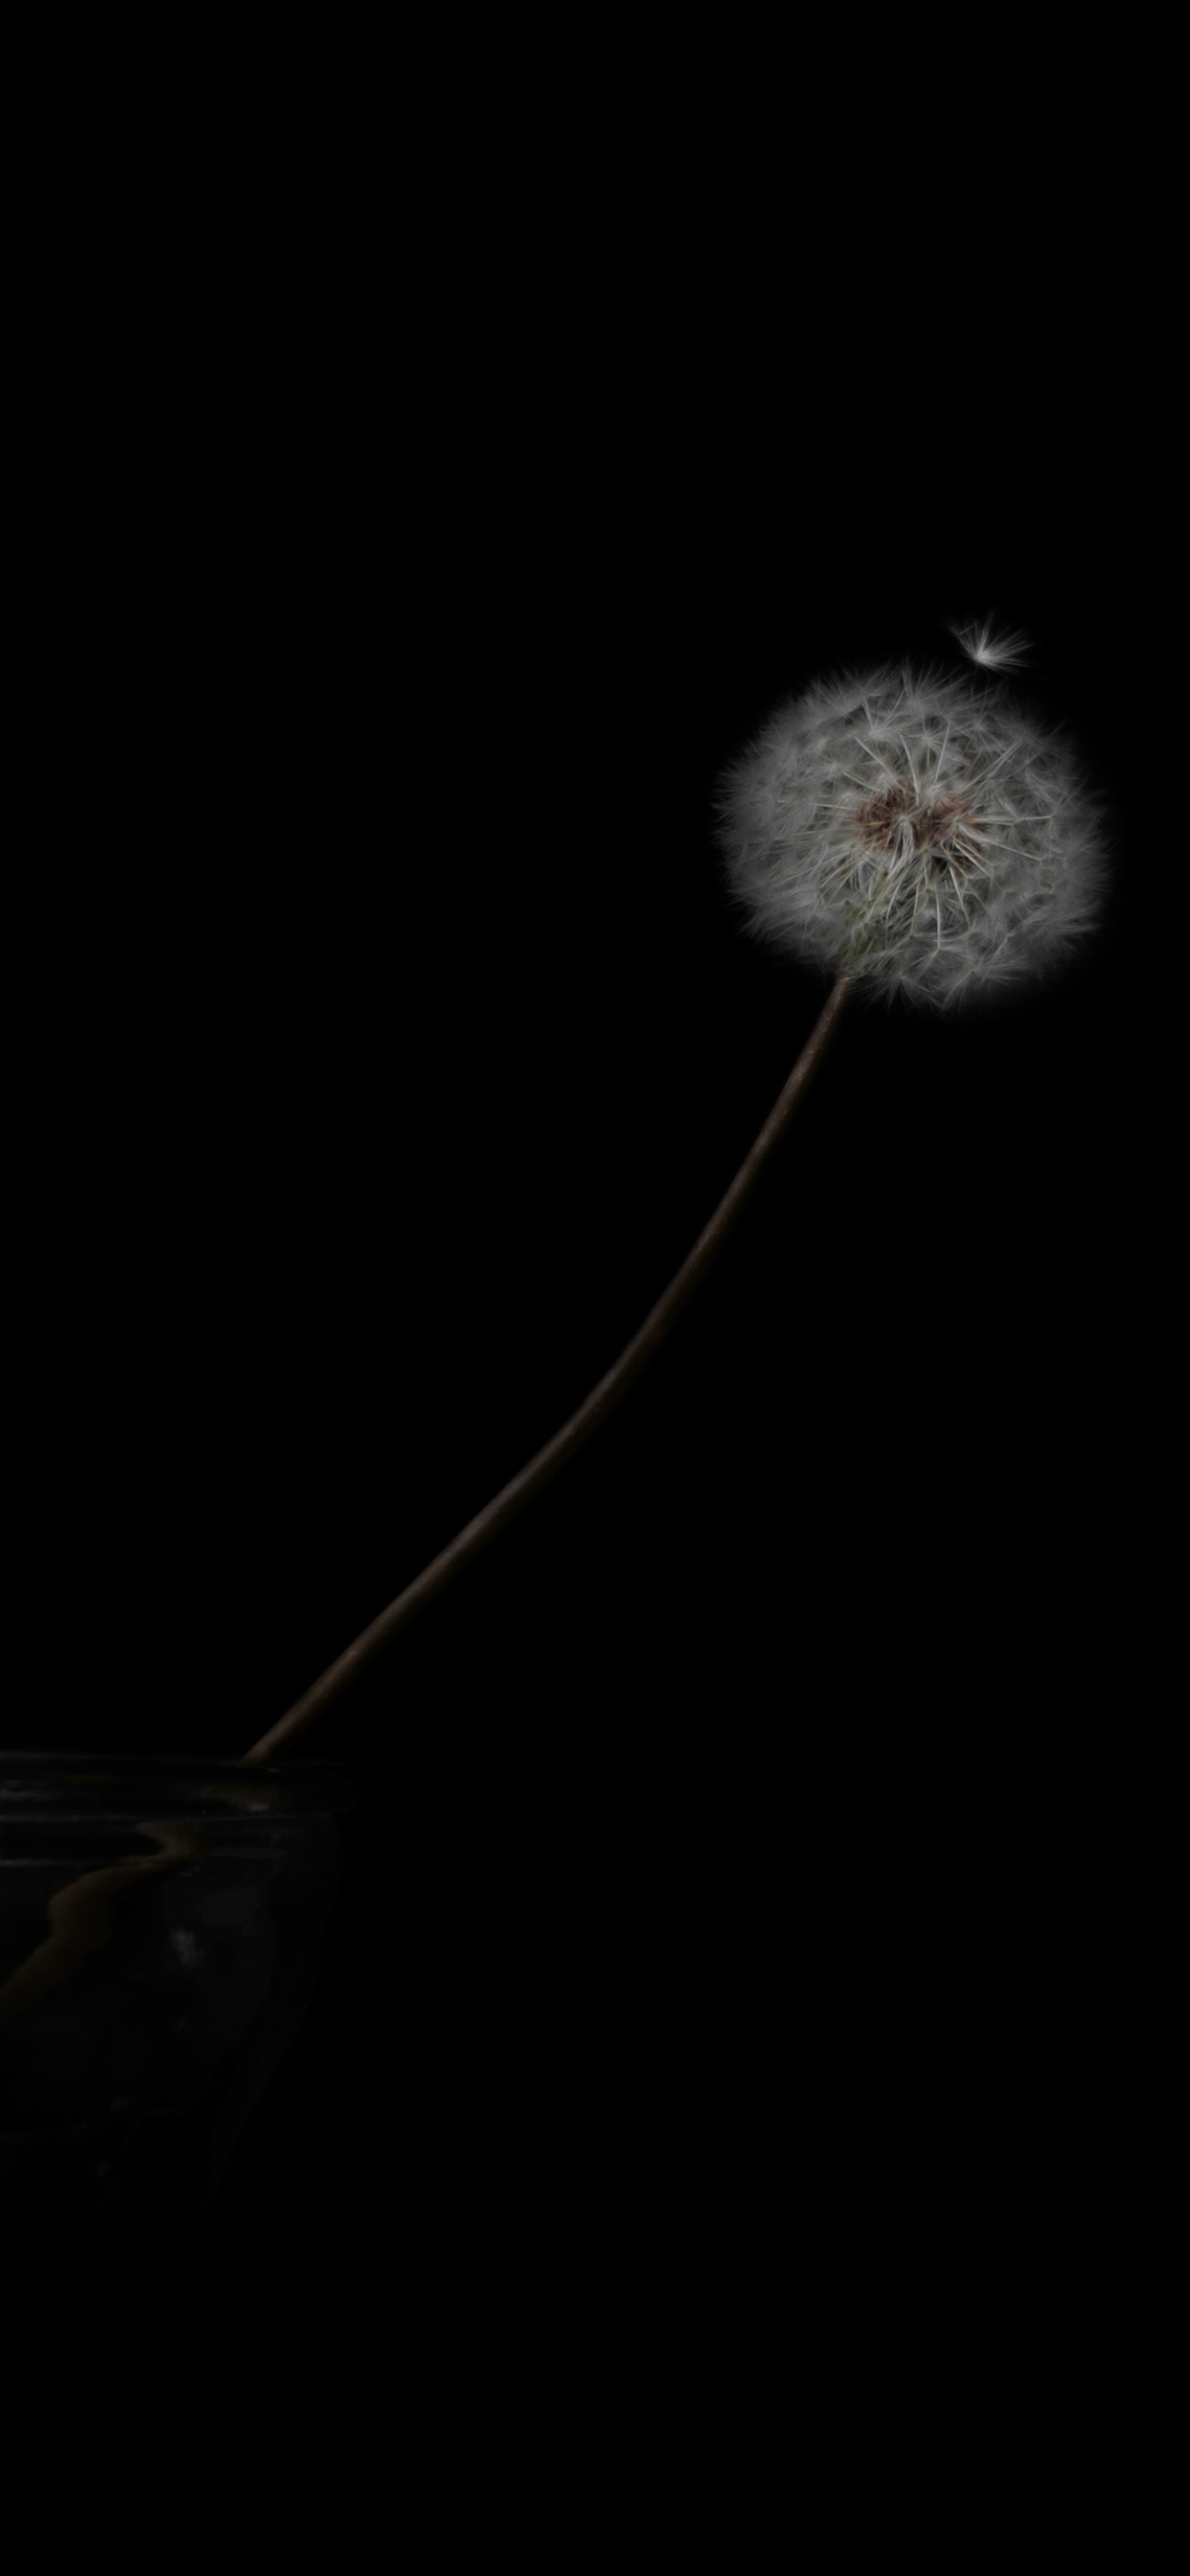 iPhone wallpapers black dandelion Fonds d'écran iPhone du 27/06/2019